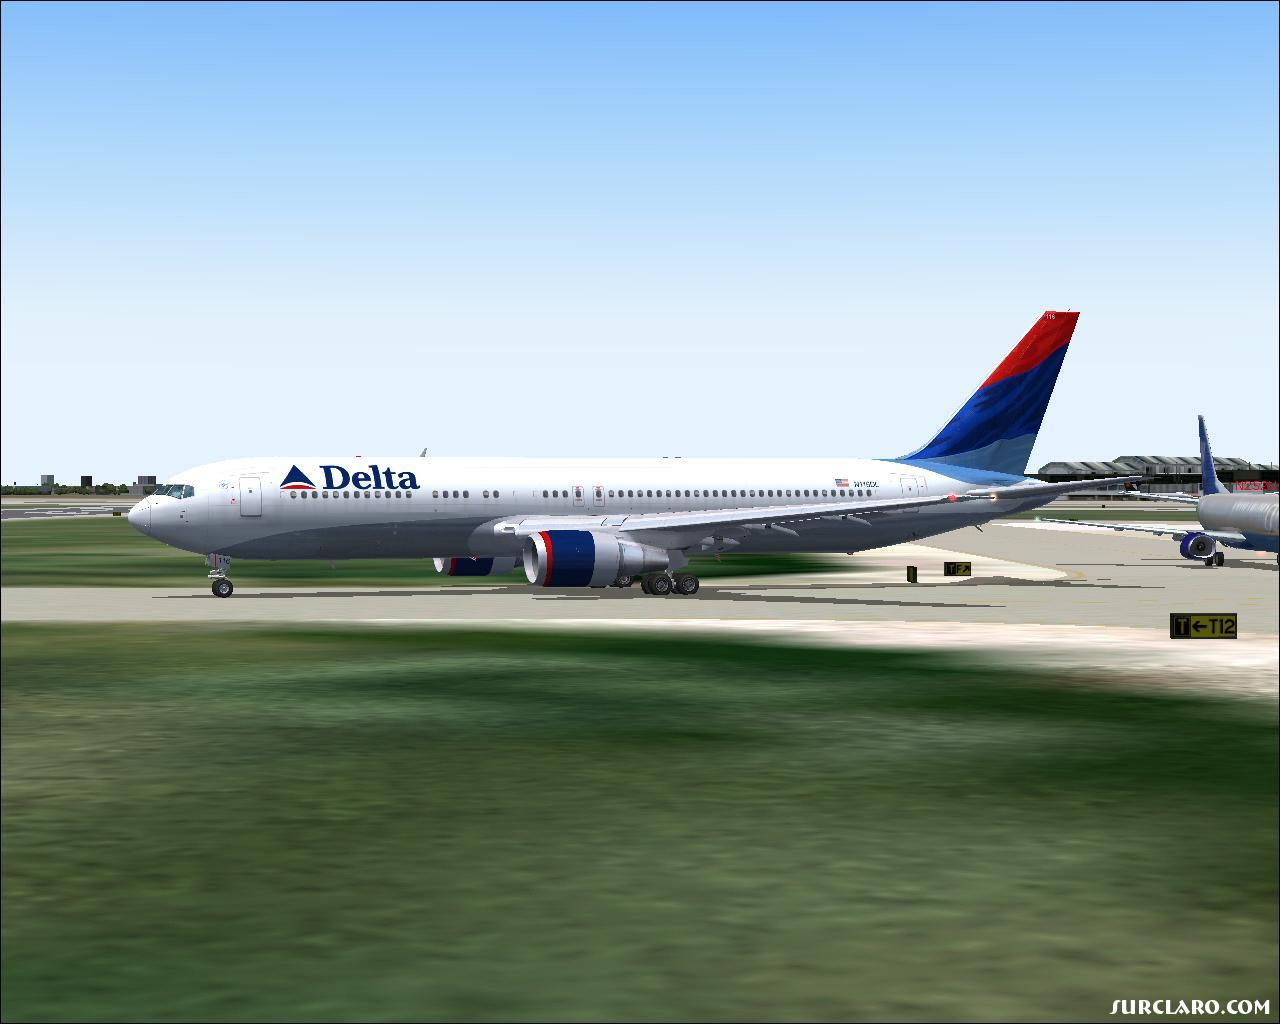 Boeing 767 Delta Airlines...waitng for permission to take off from SEA. 